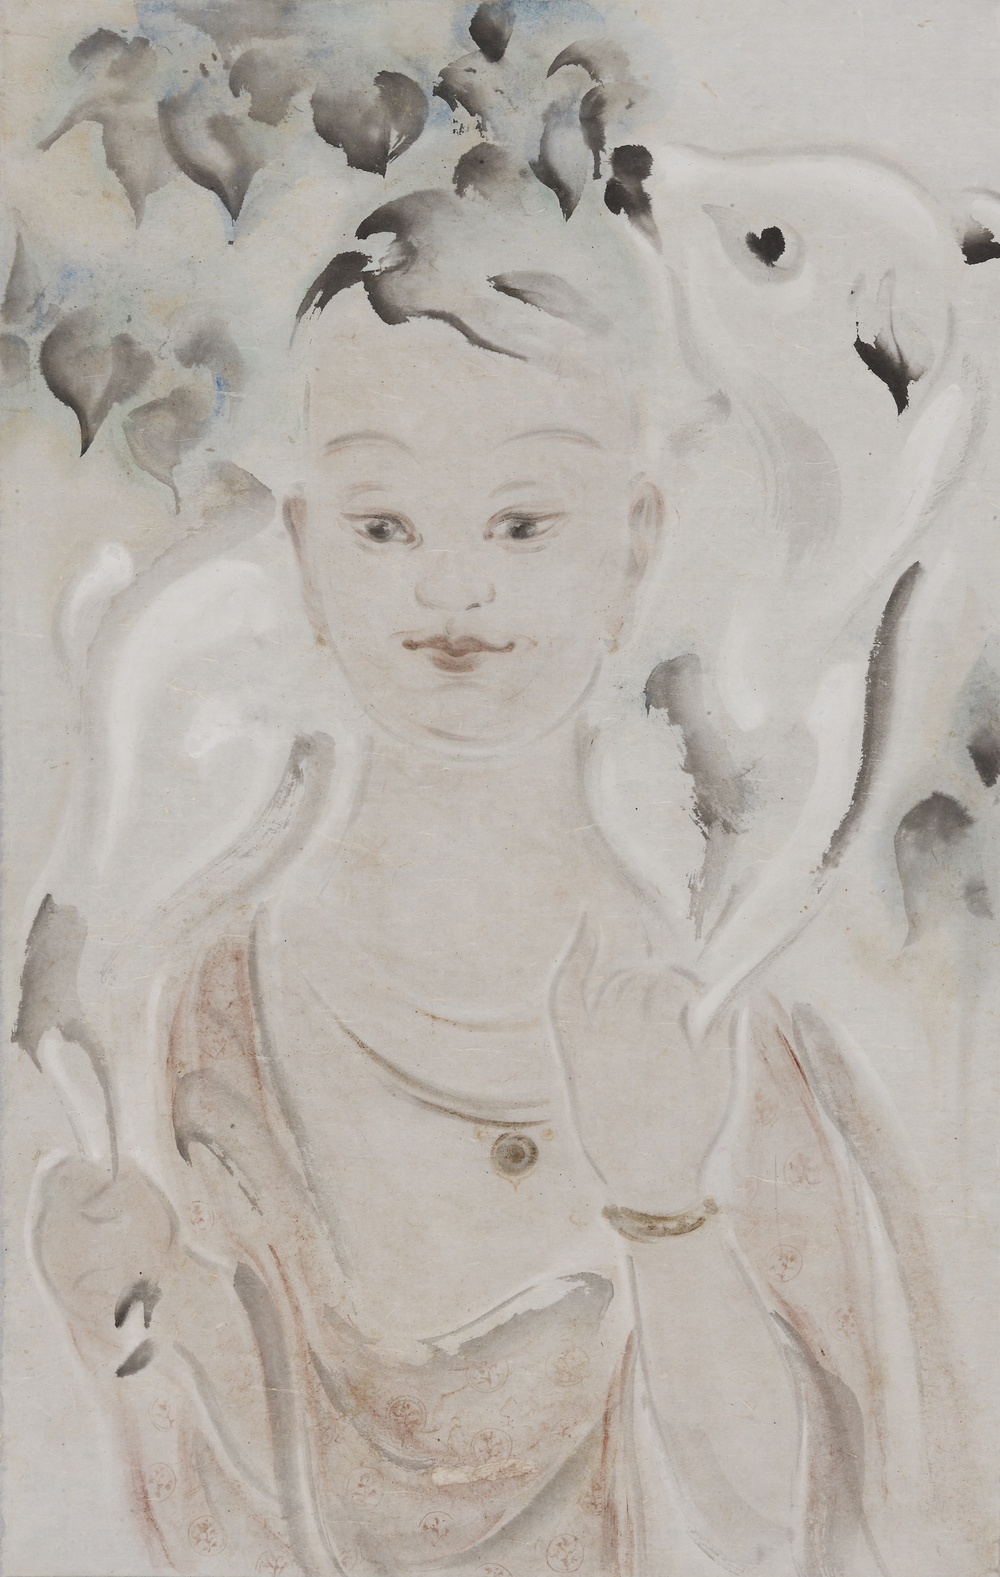 Pan Wenxun 潘汶汛, Crimson Girl 暖鹿, 2012, Chinese ink and mineral color on rice paper 纸本水墨设色, 96 x 61 cm